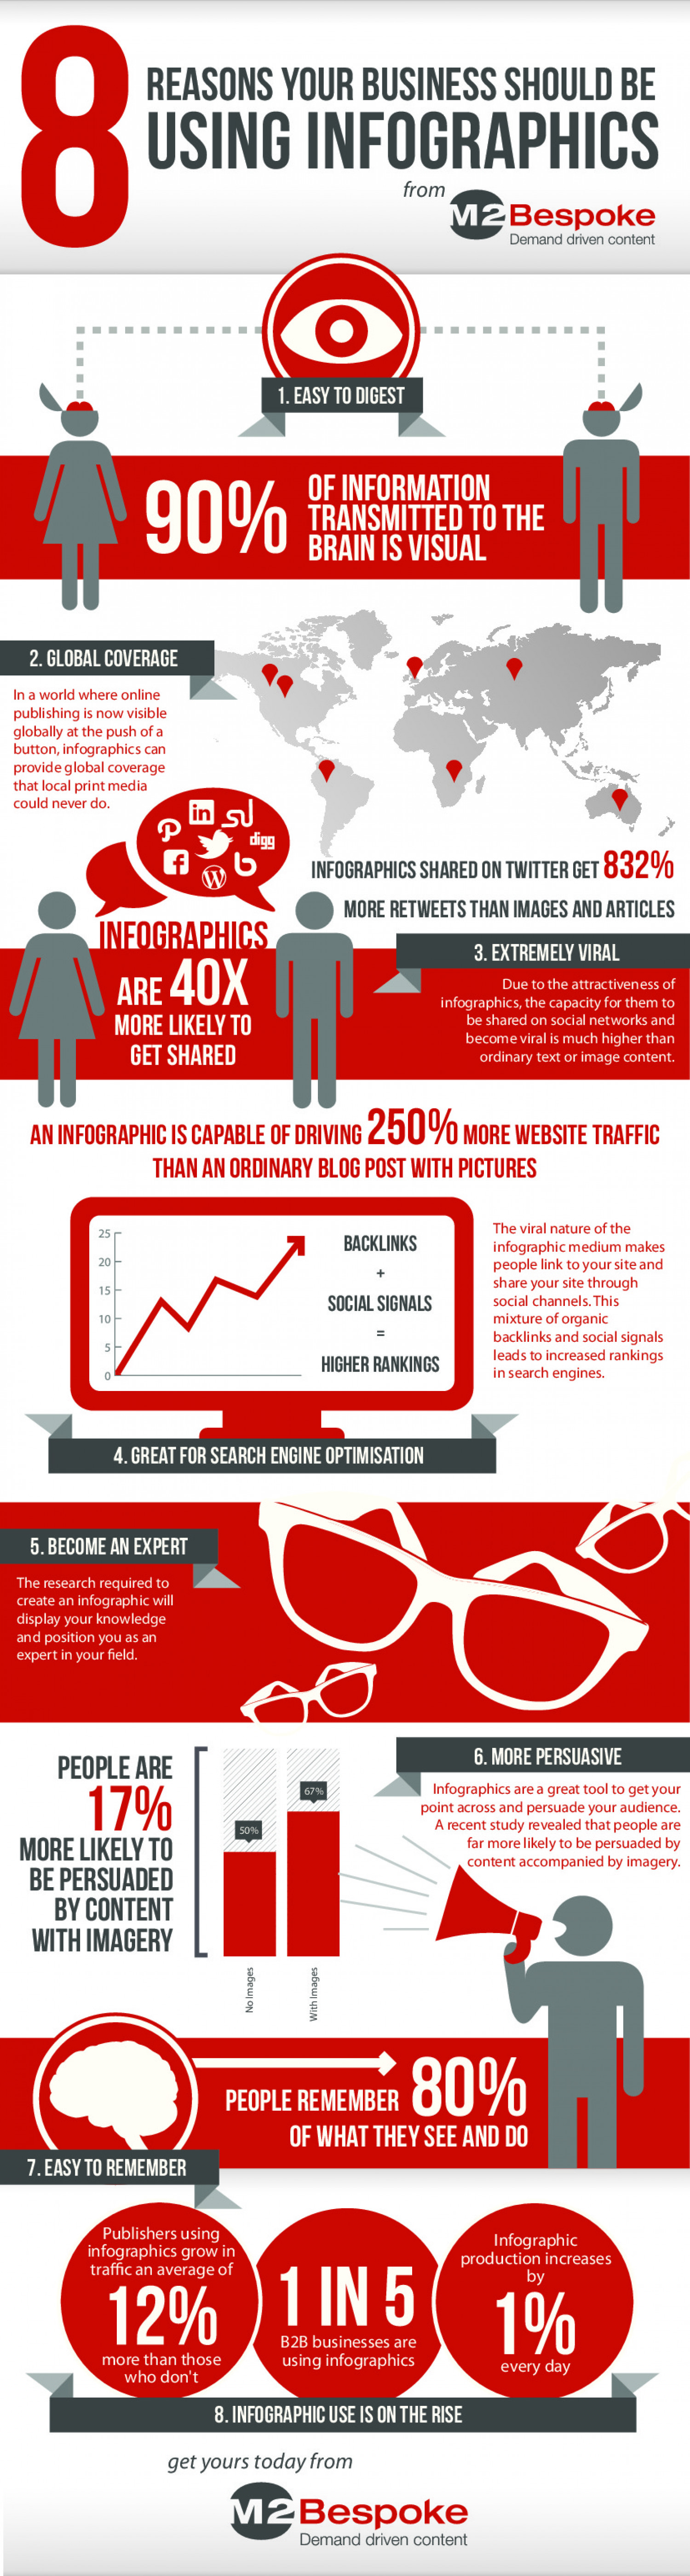 8 Reasons Your Business Should Be Using Infographics Infographic